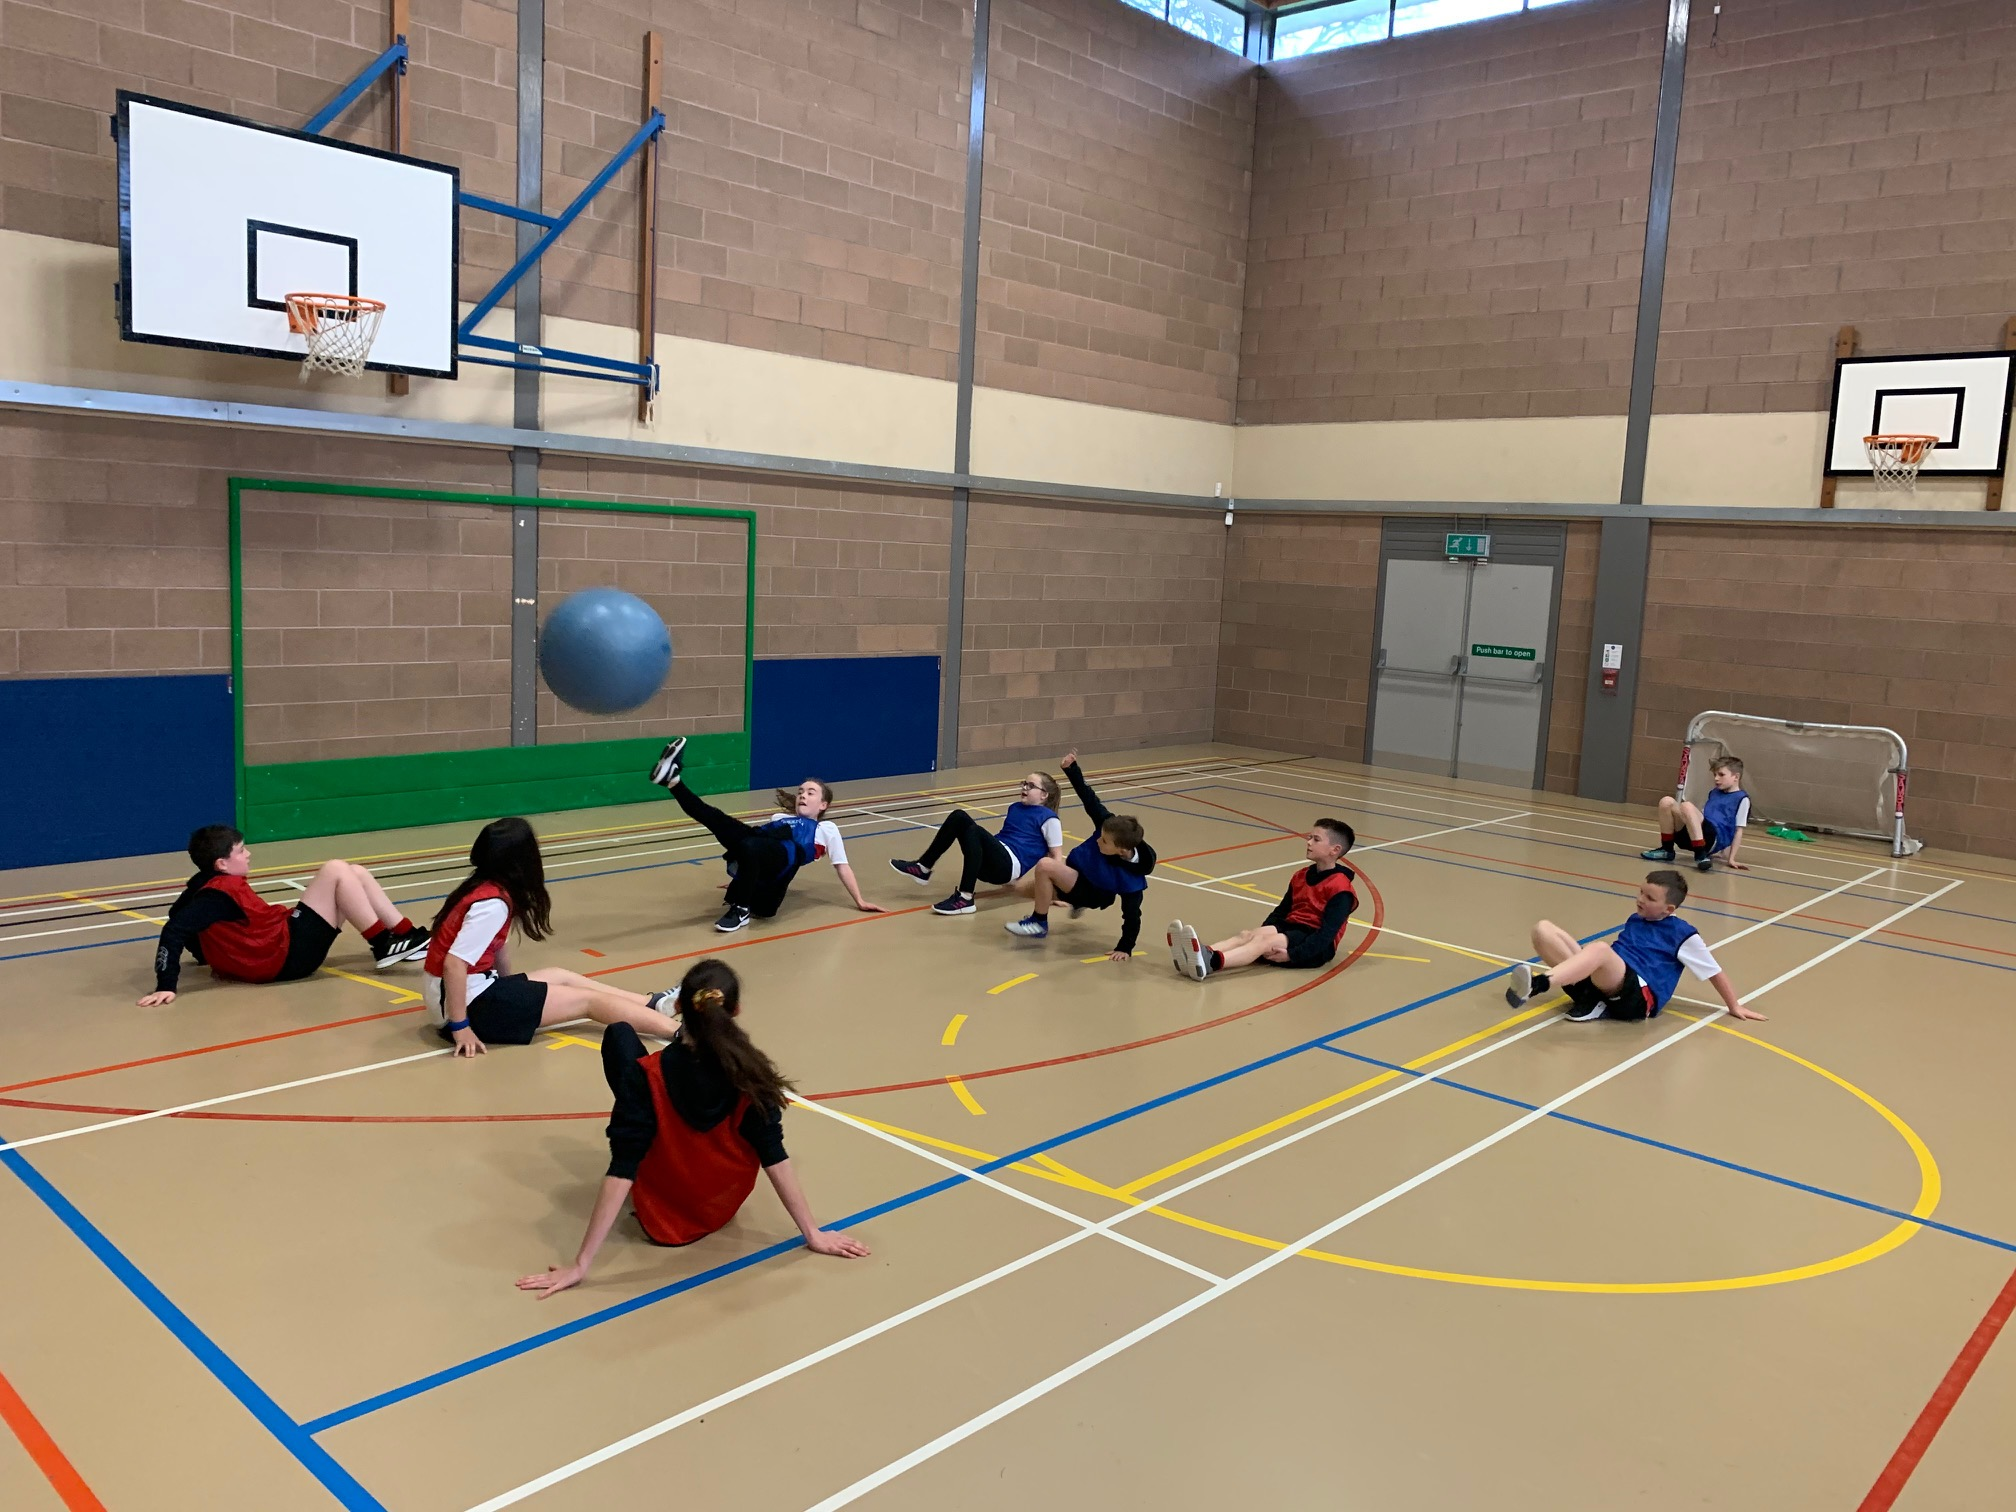 A group of children in a school gym playing crab football